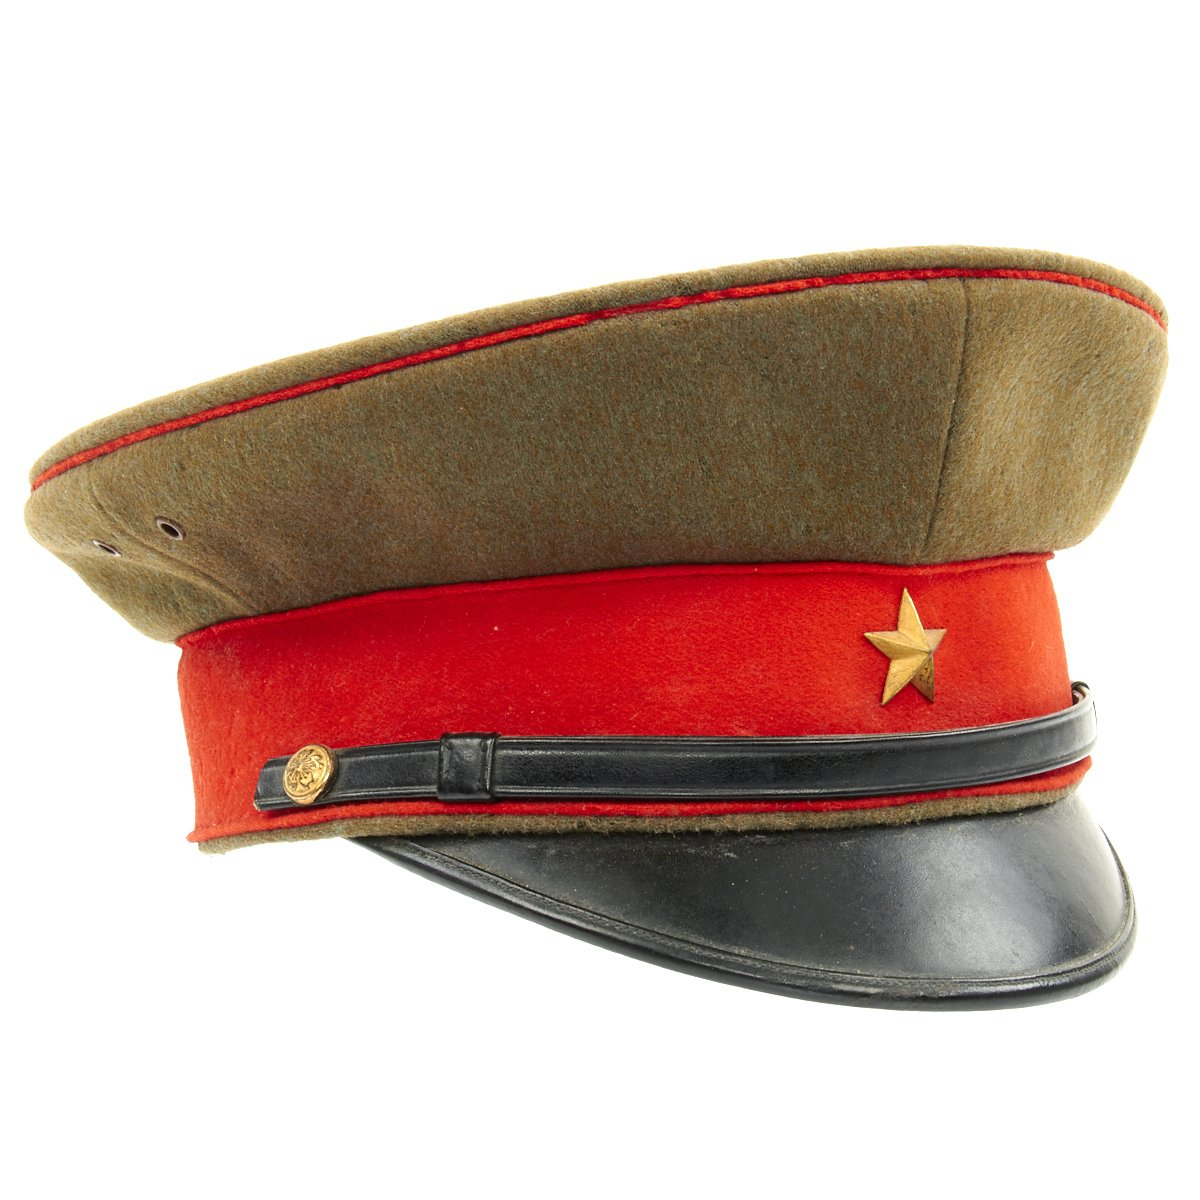 863f0d898 Original WWII Imperial Japanese Army Officer Visor Cap ...